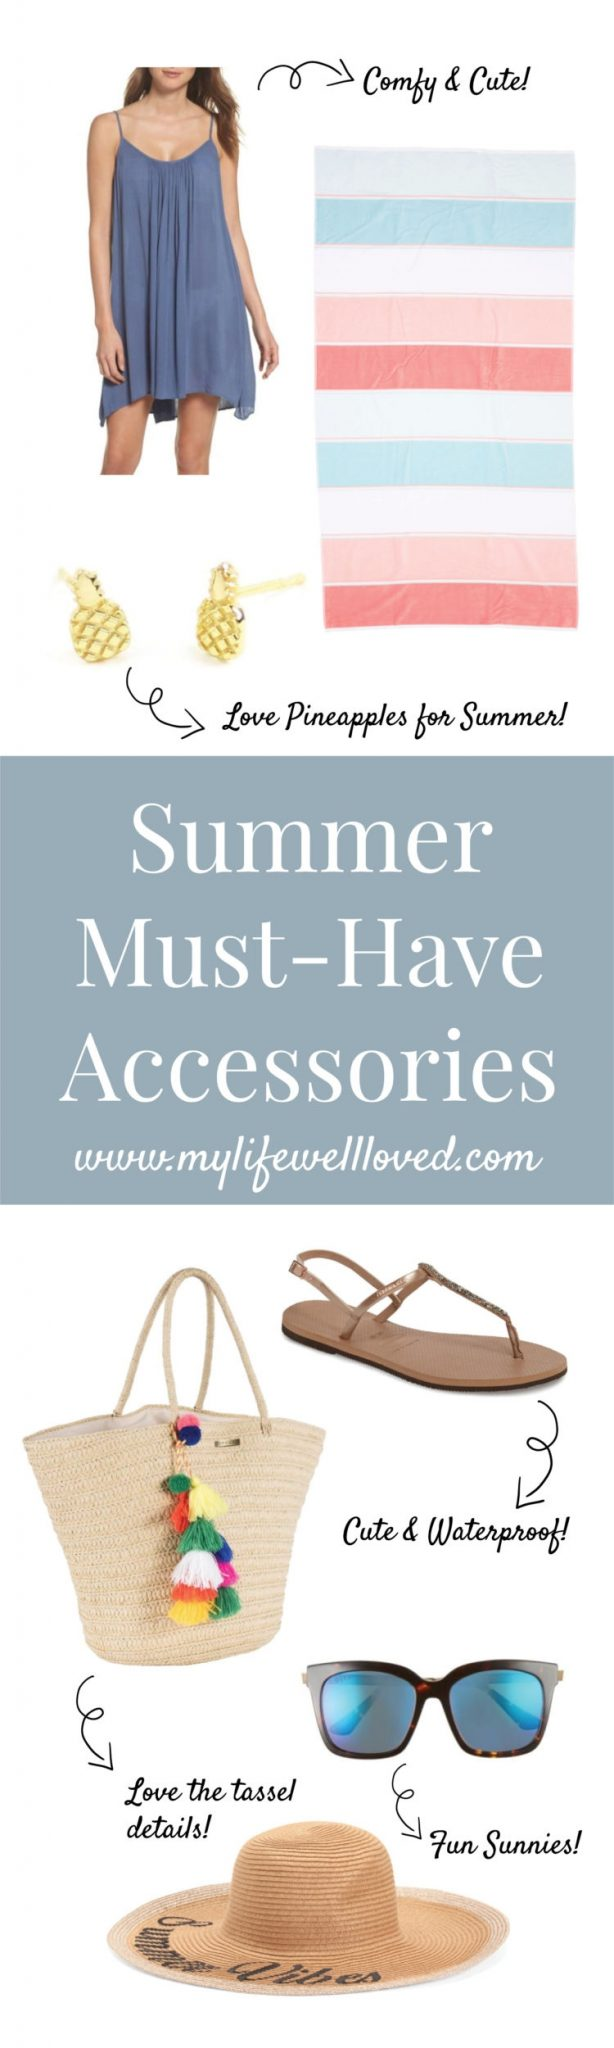 Summer Beach Accessories to make you look stylish whether you're at the pool, lake, or beach! Great vacation fashion finds for the trendy mom on the go from alabama blogger Heather of MyLifeWellLoved.com